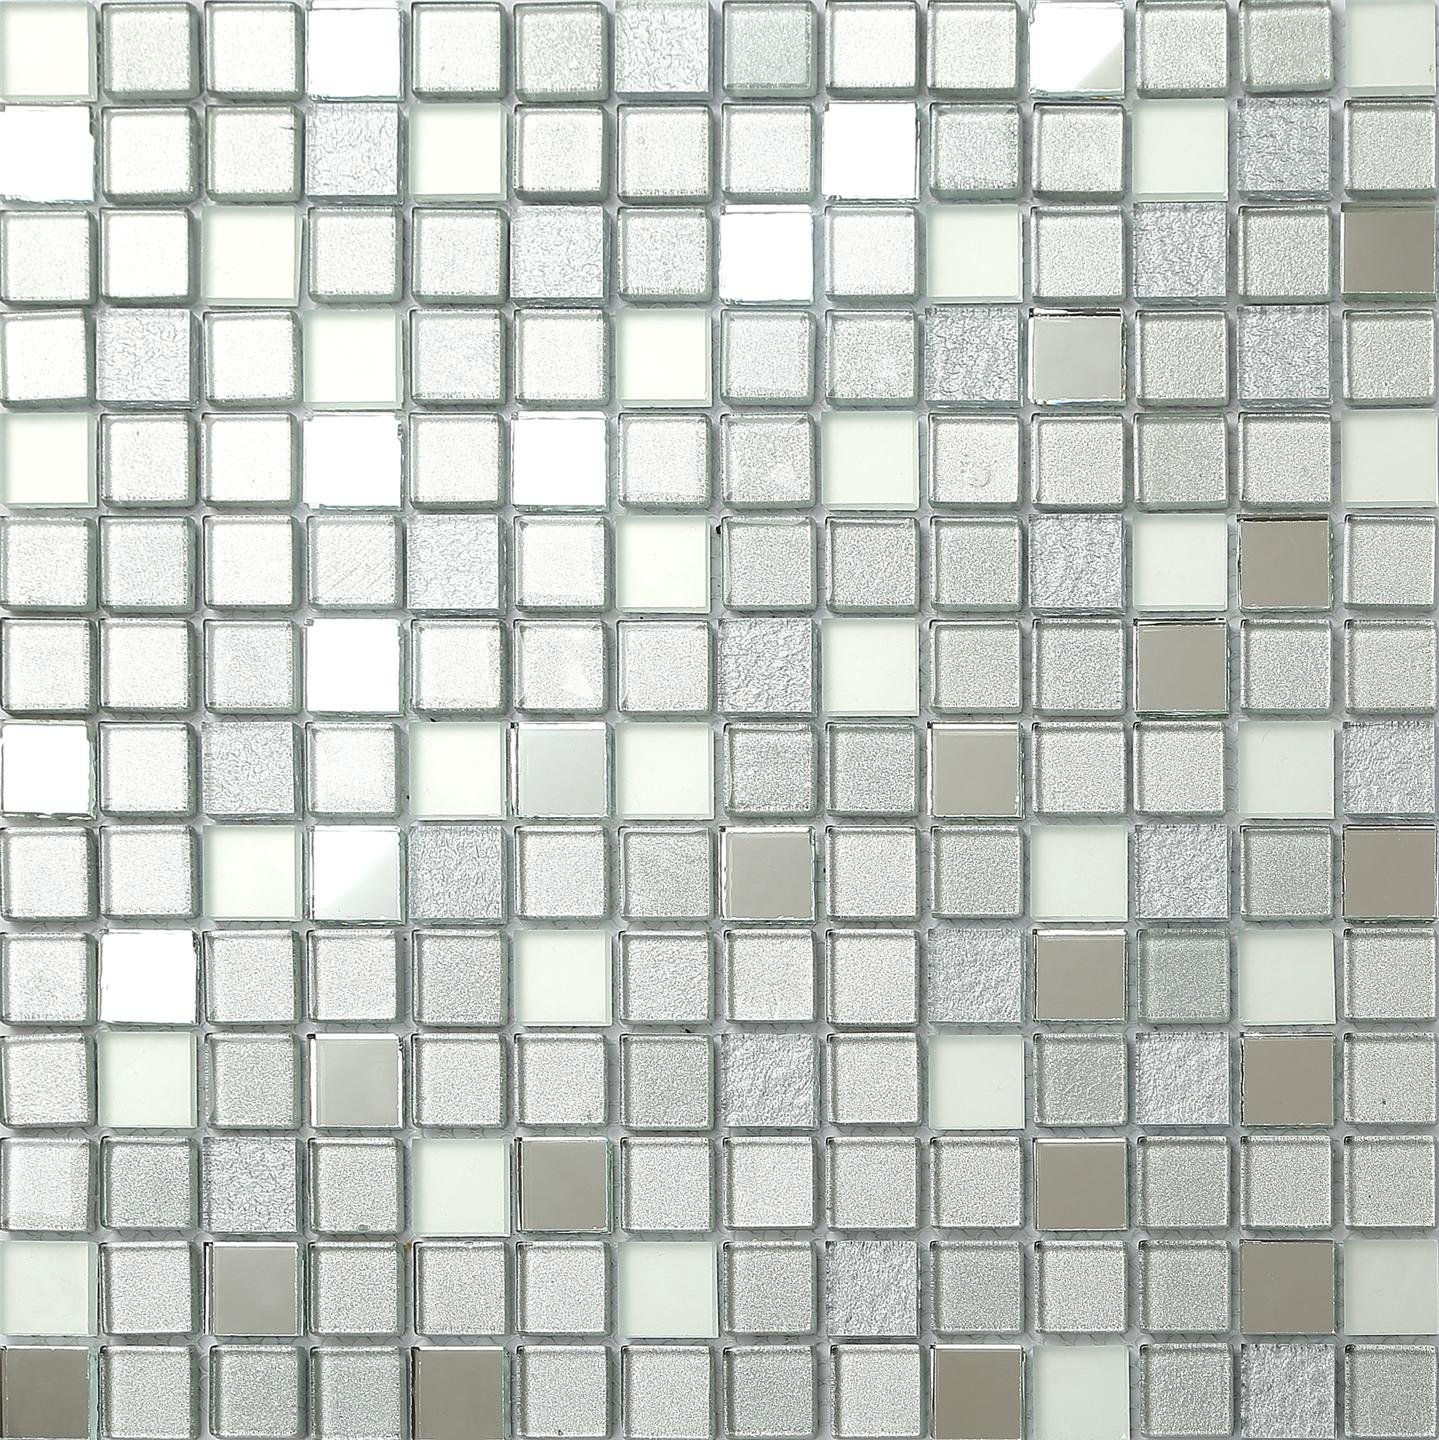 30cm x 30cm Silver Mirror Frosted Glitter Mix Glass Mosaic Tiles ...